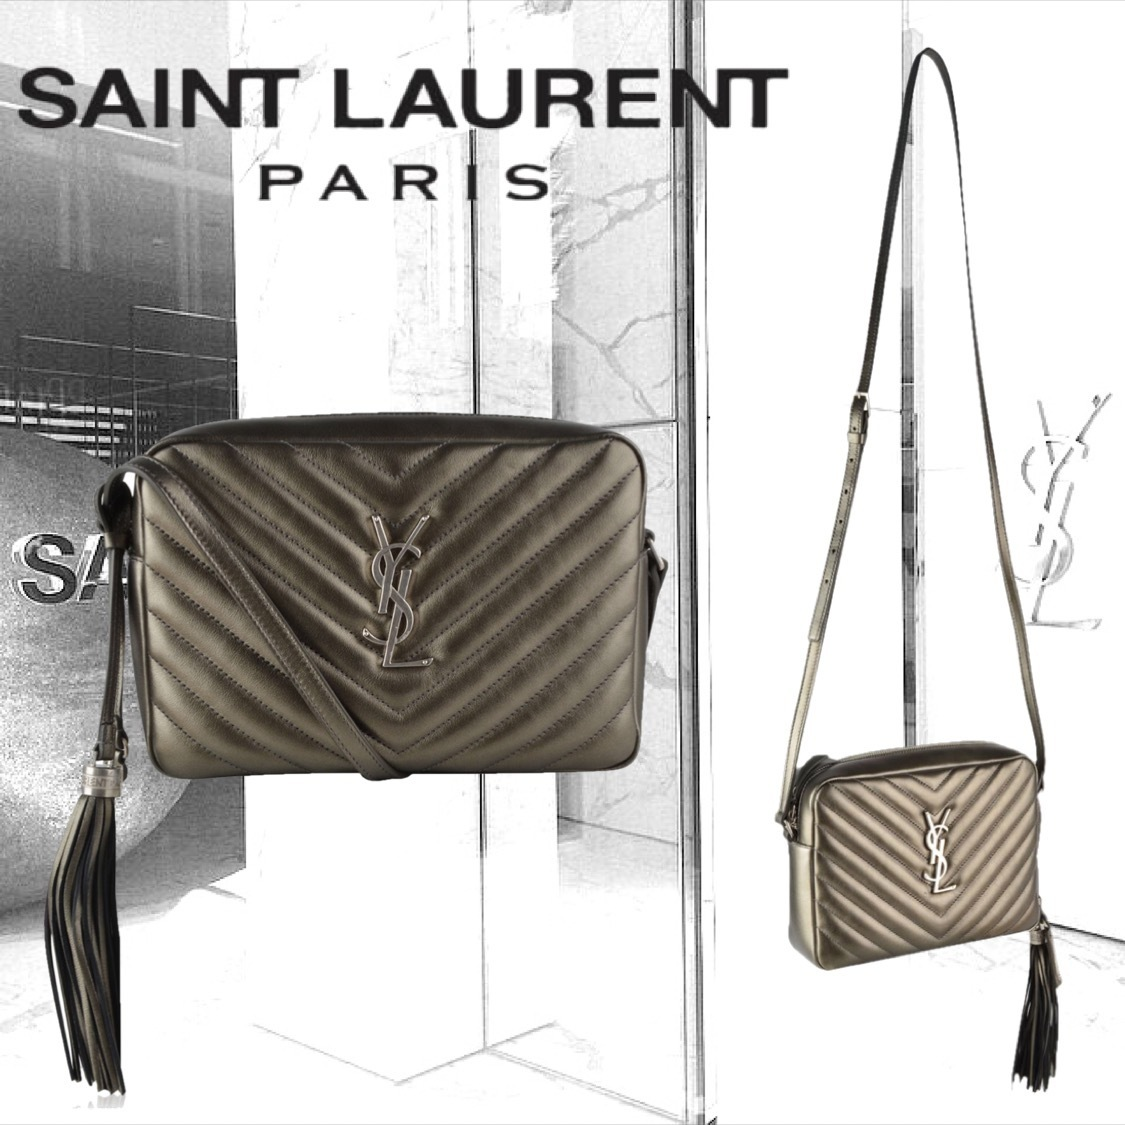 【SAINT LAURENT】LEATHER TASSEL HANDBAG ショルダーバッグ